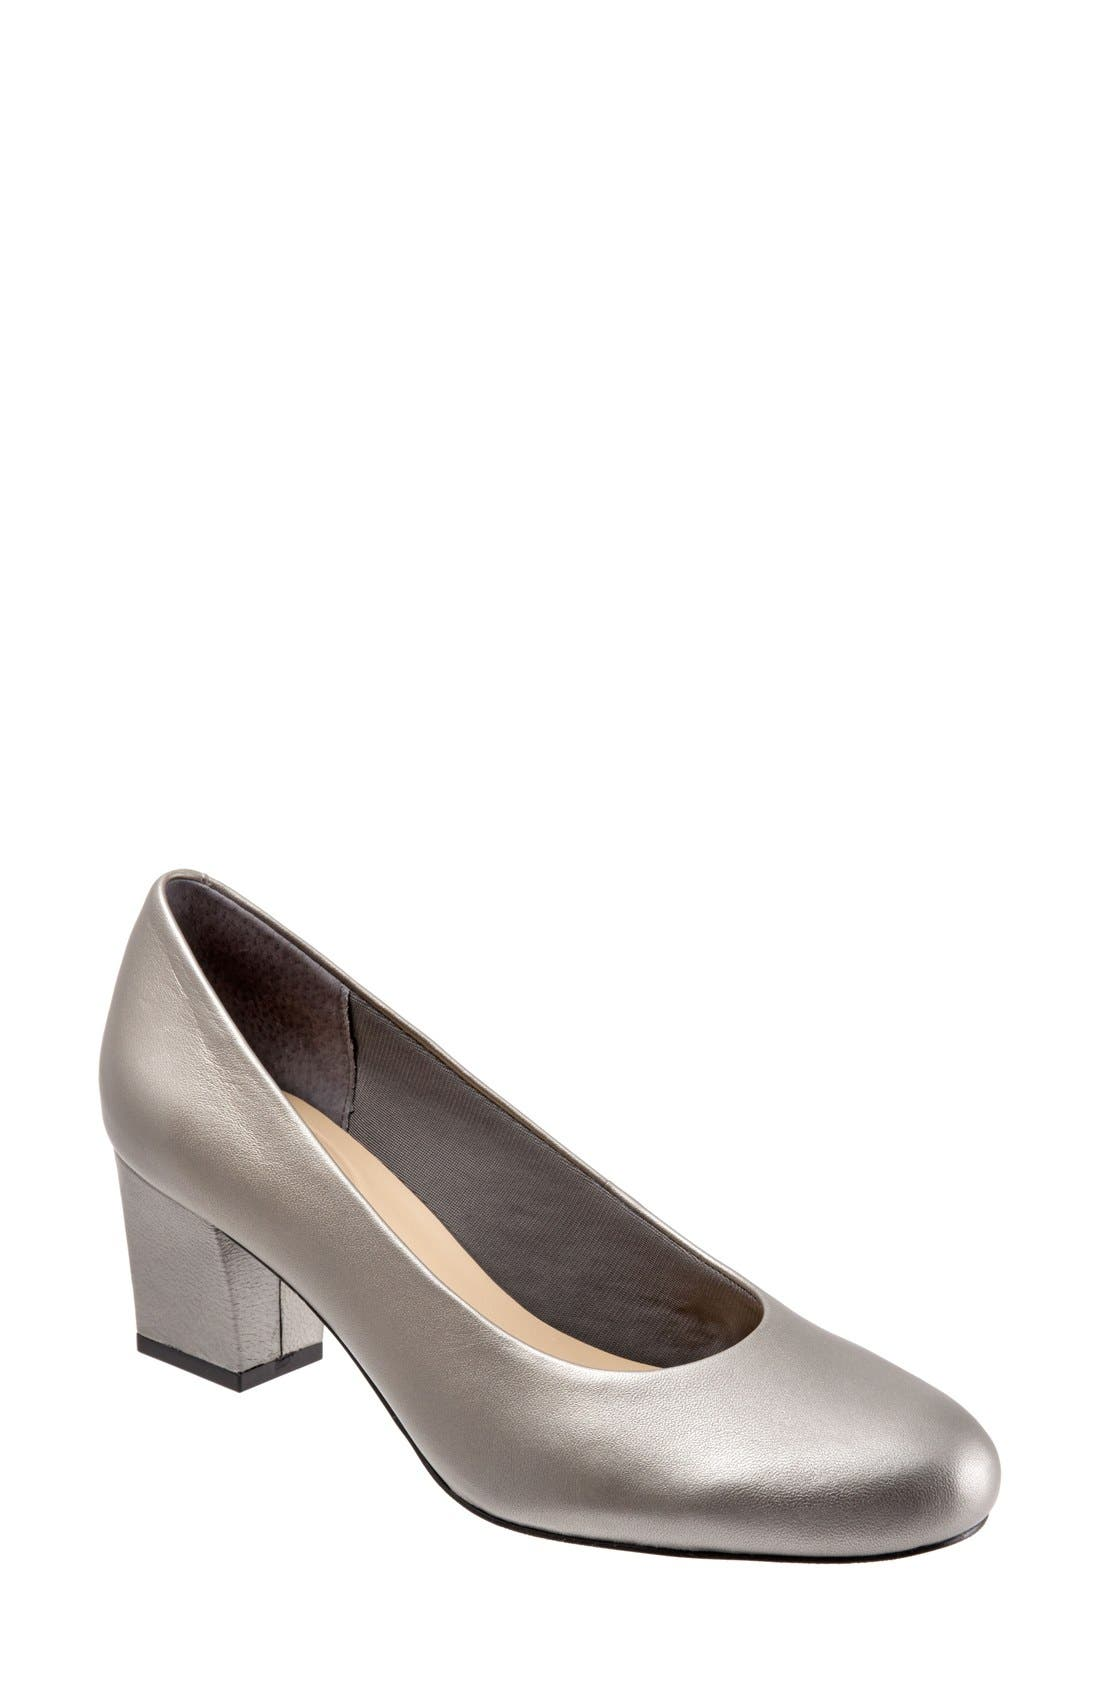 Alternate Image 1 Selected - Trotters 'Candela' Pump (Women)